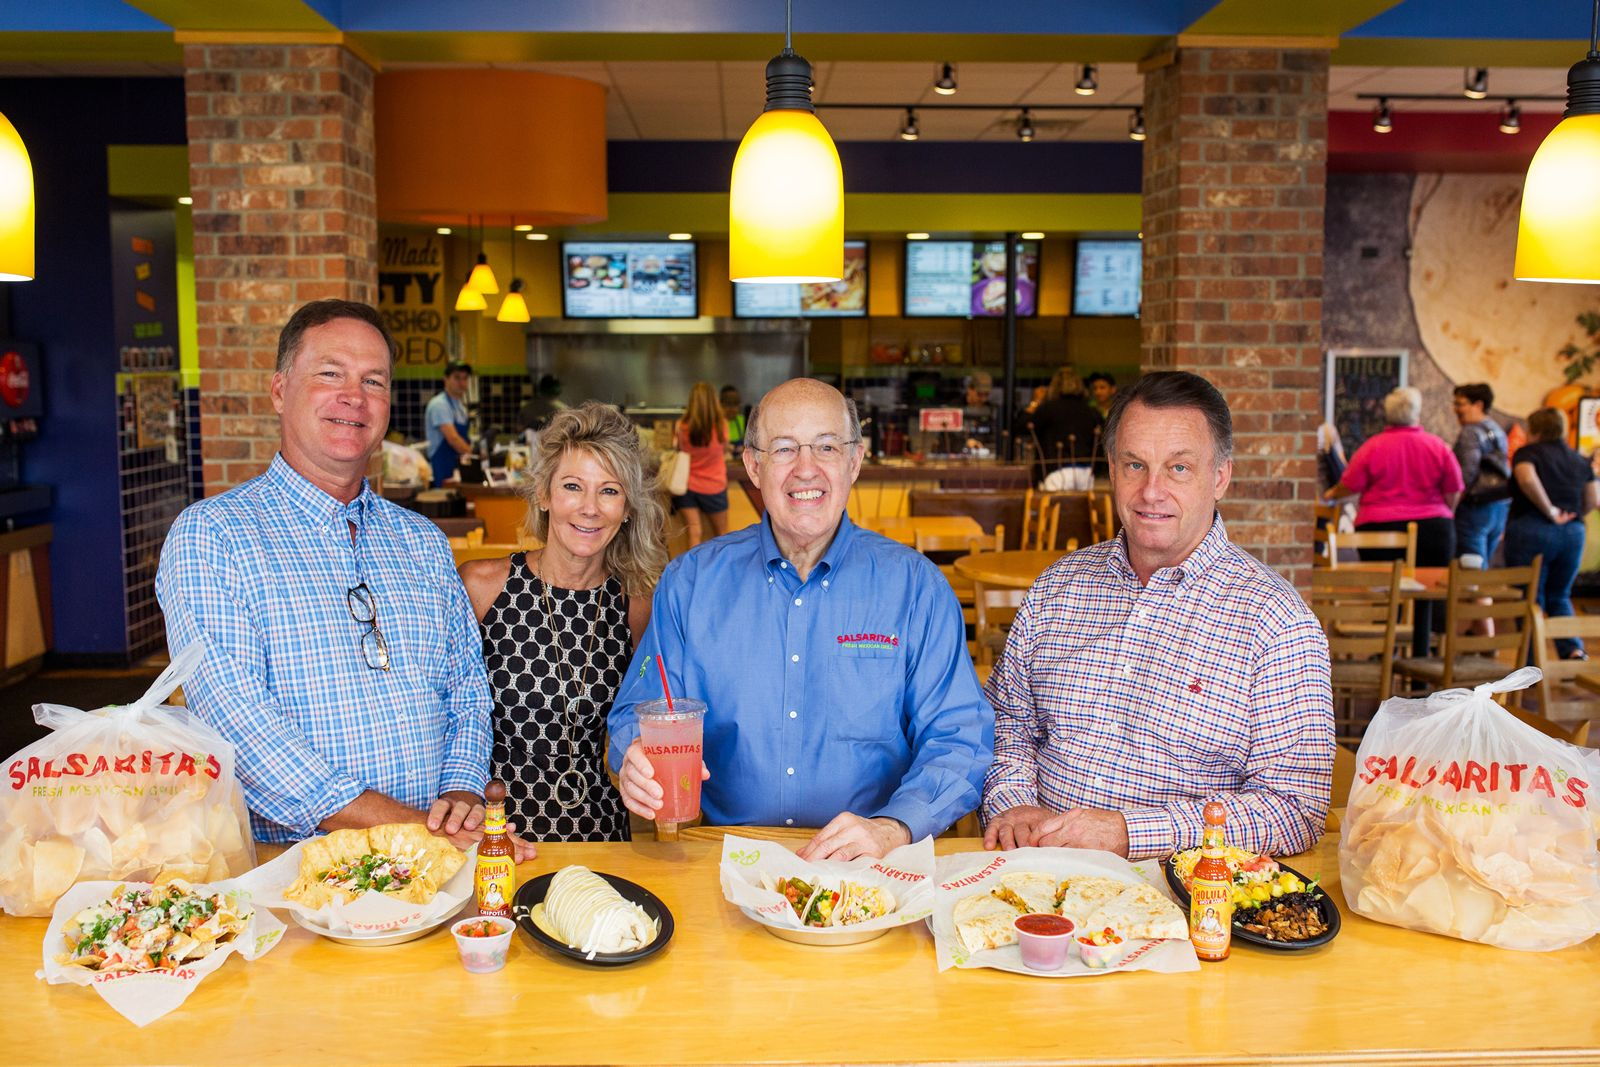 Steve Stallings, Pam Stallings, Phil Friedman President and CEO of Salsarita's Fresh Mexican Grill and Ken Green COO.